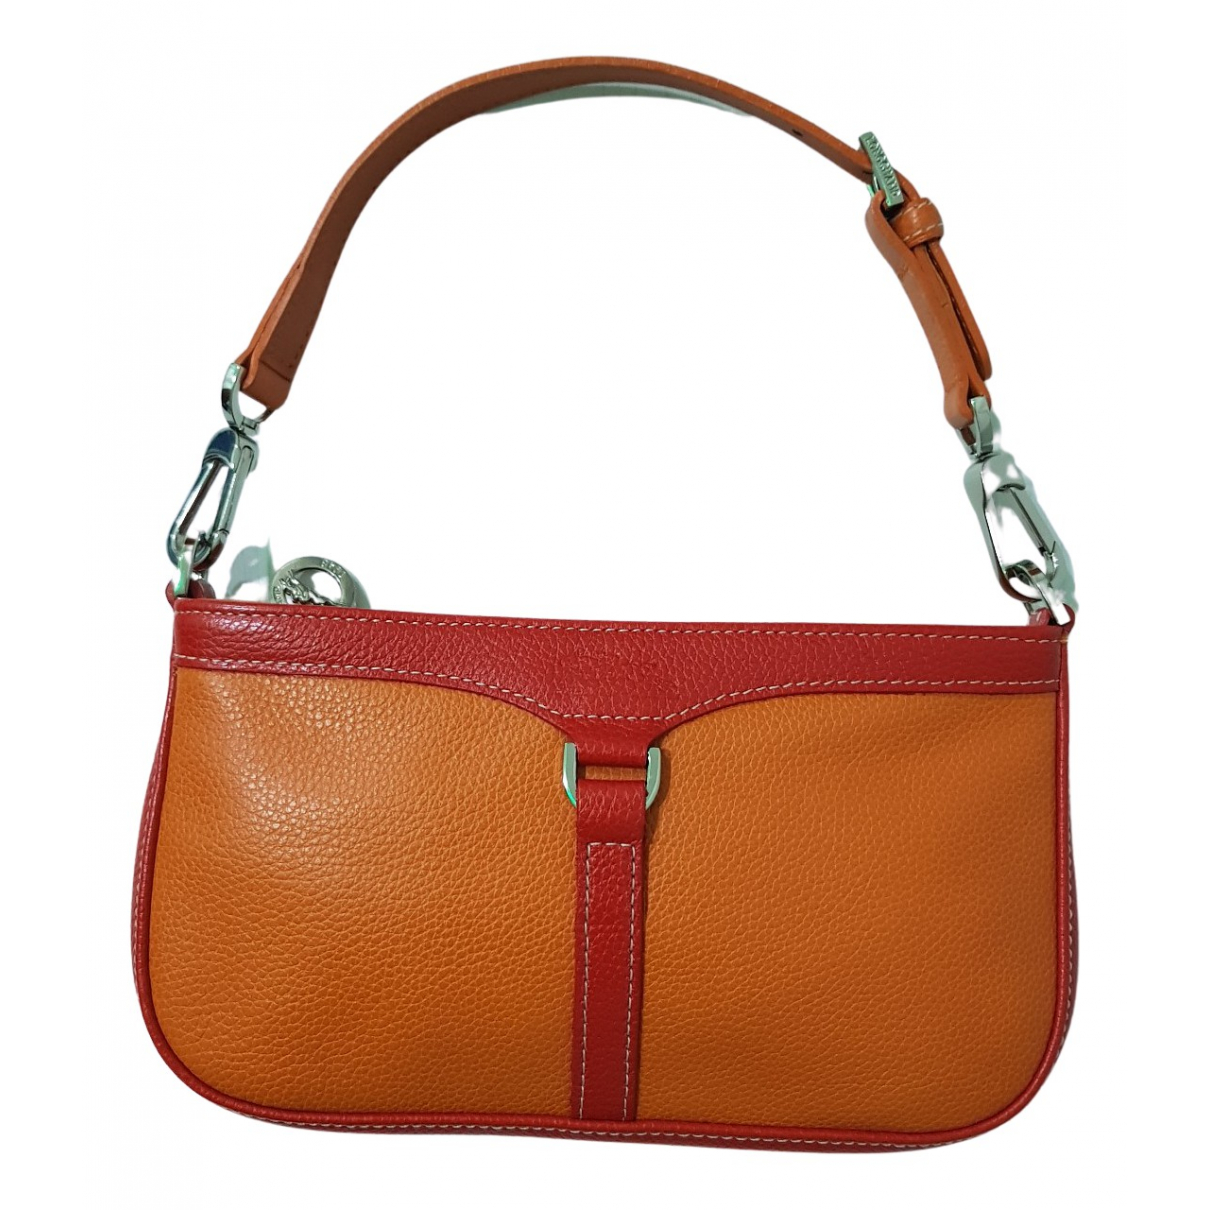 Longchamp N Orange Leather handbag for Women N